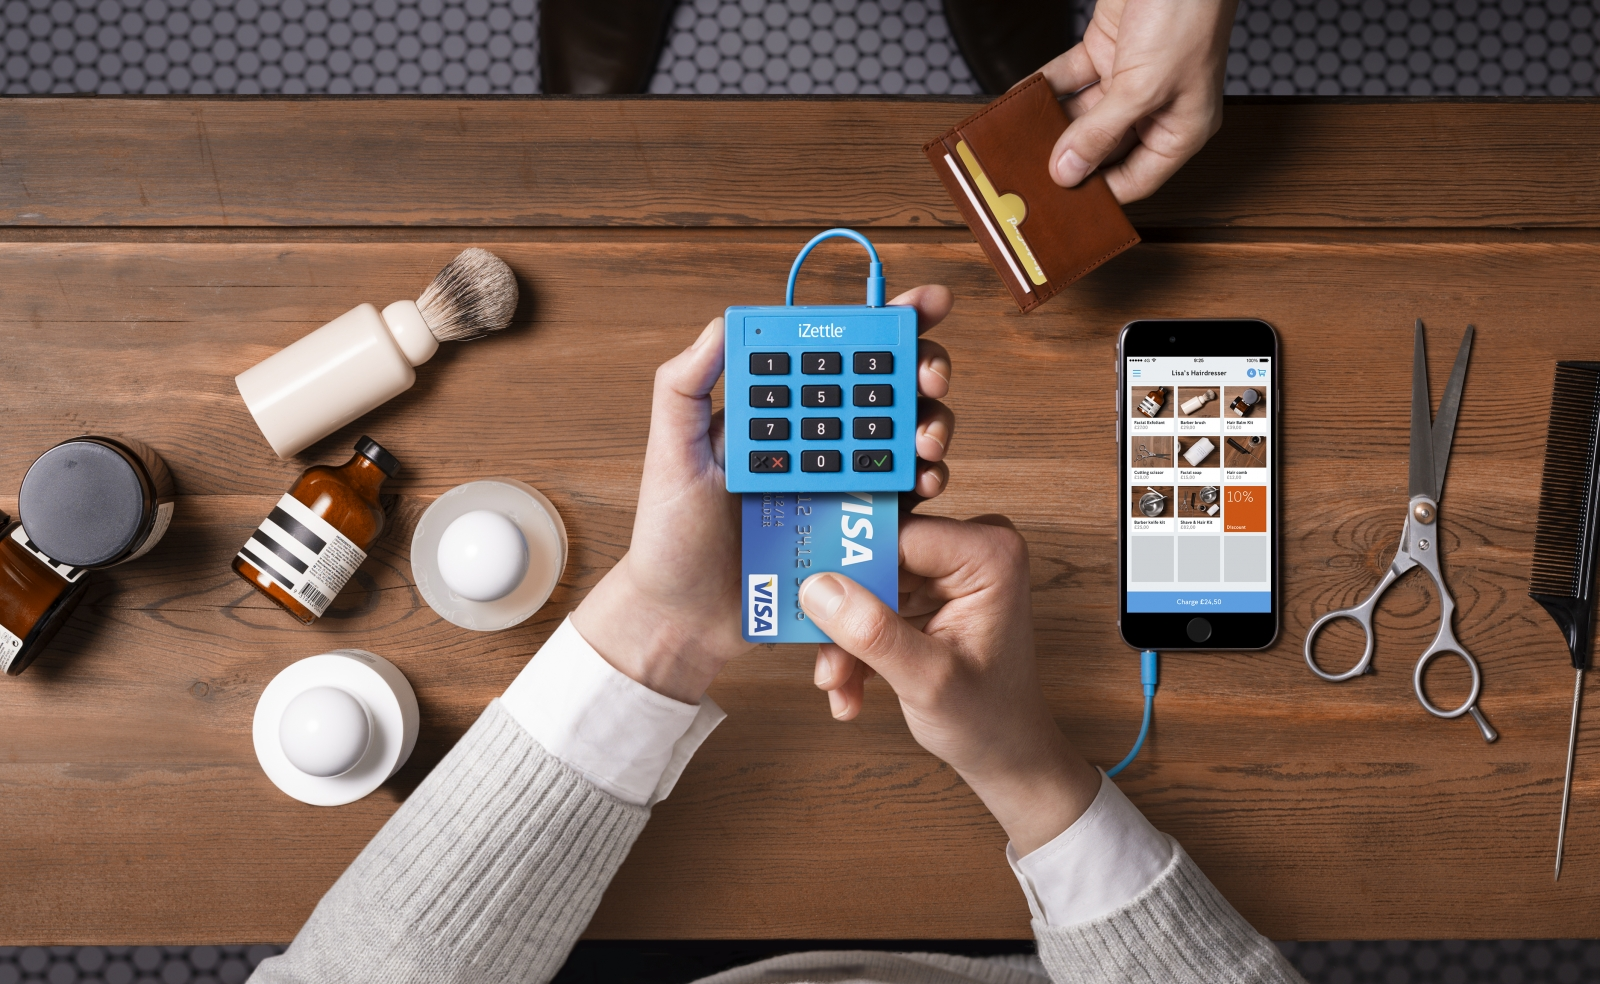 iZettle free chip-and-PIN reader launched